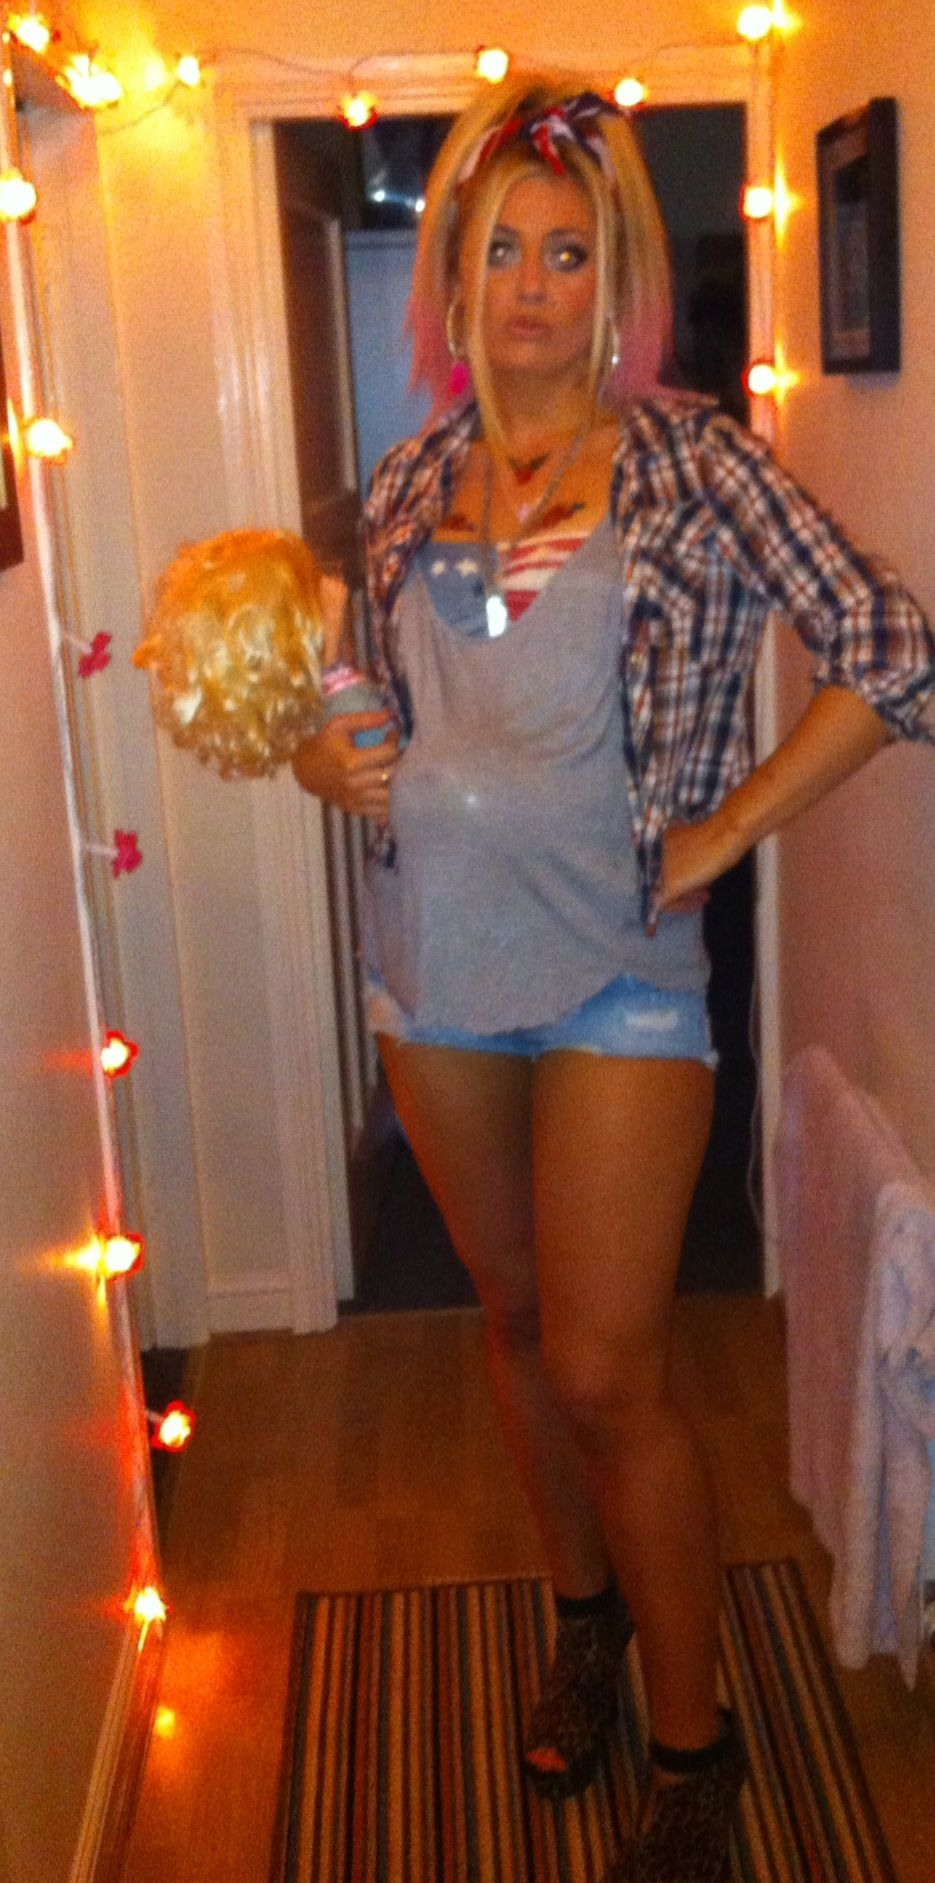 Good White Trash Christmas Party Ideas Part - 8: Ideas For The Trailer Trash New Years Party We Are Going To